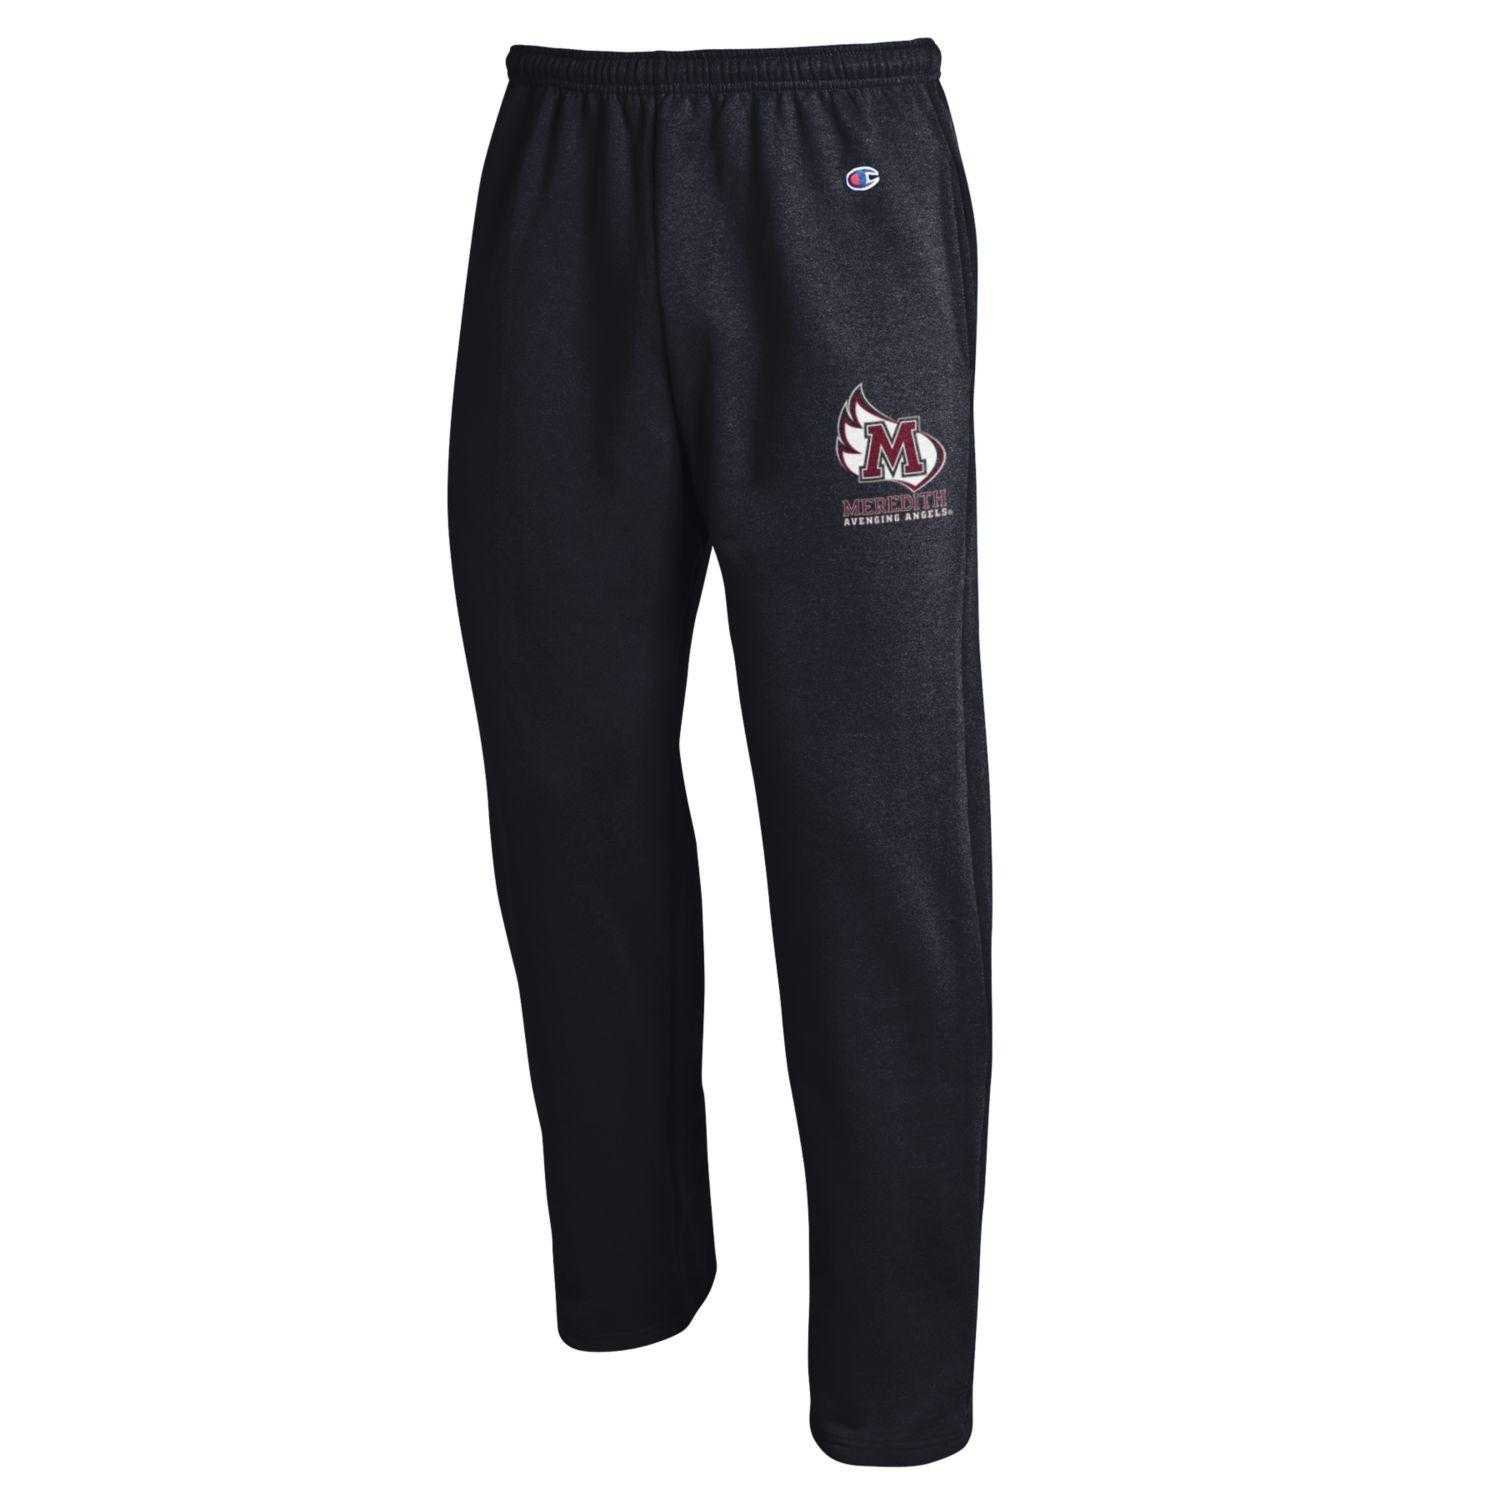 Image for the Open Bottom Sweatpants, Black product